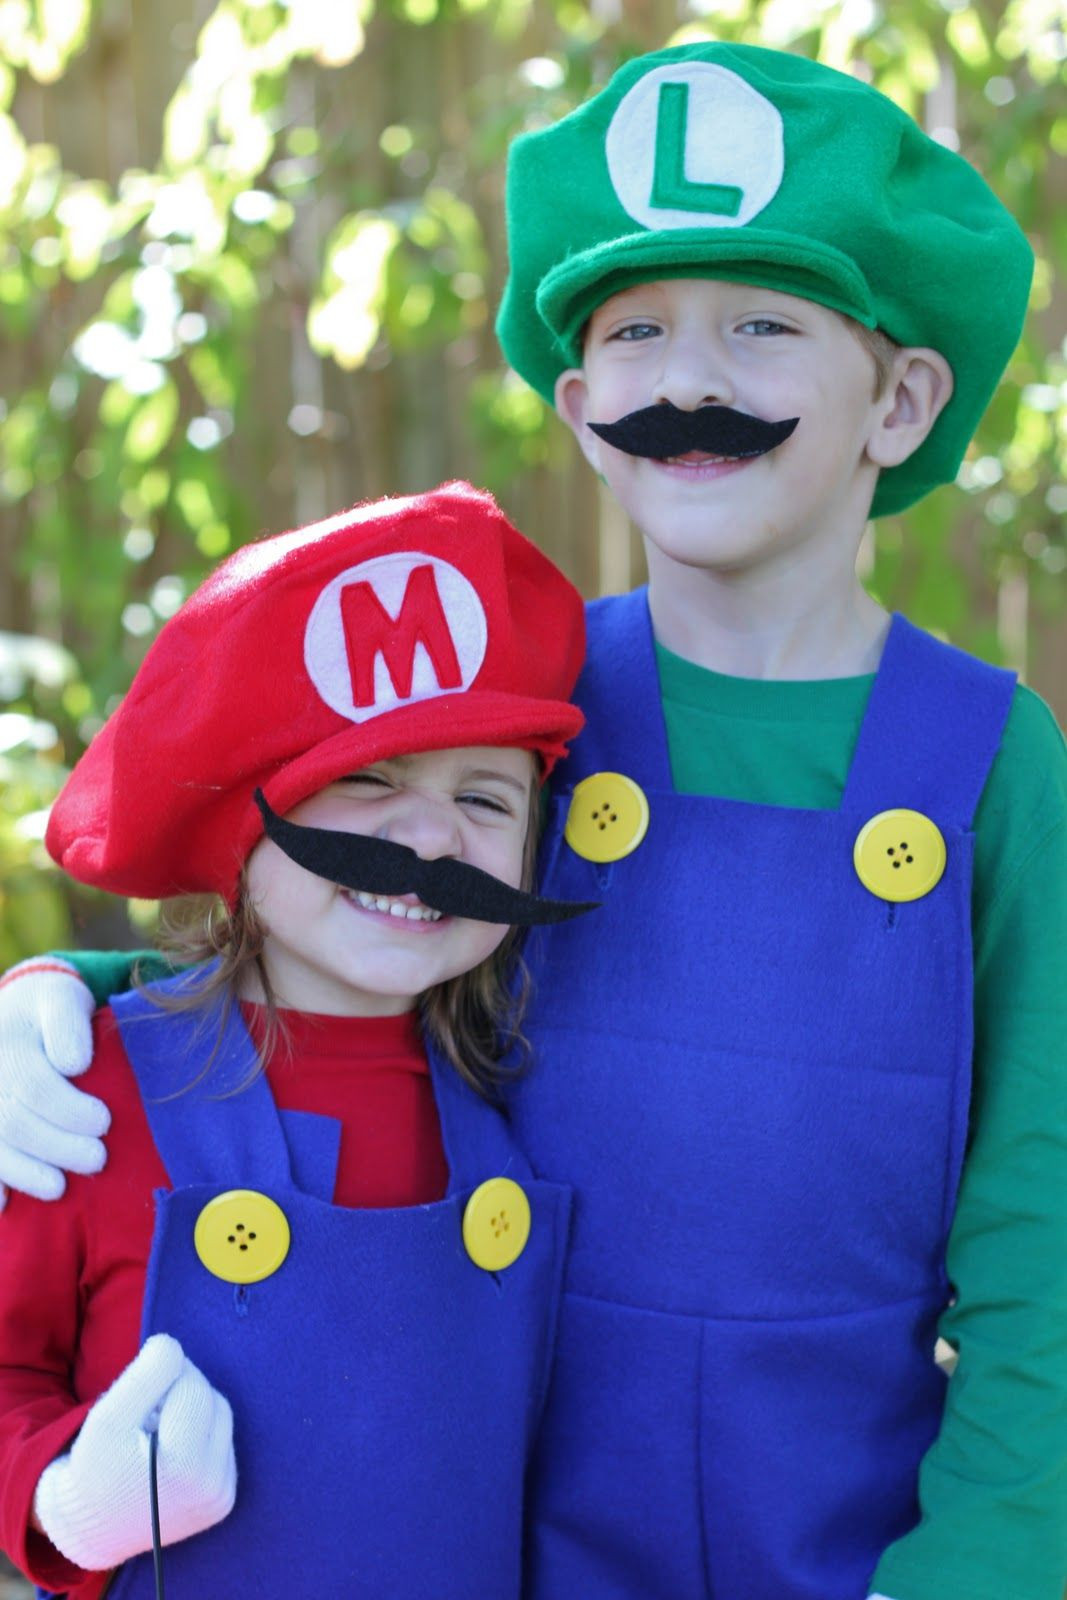 Best ideas about Super Mario Costume DIY . Save or Pin How to Make Mario and Luigi Costumes Tutorial Now.